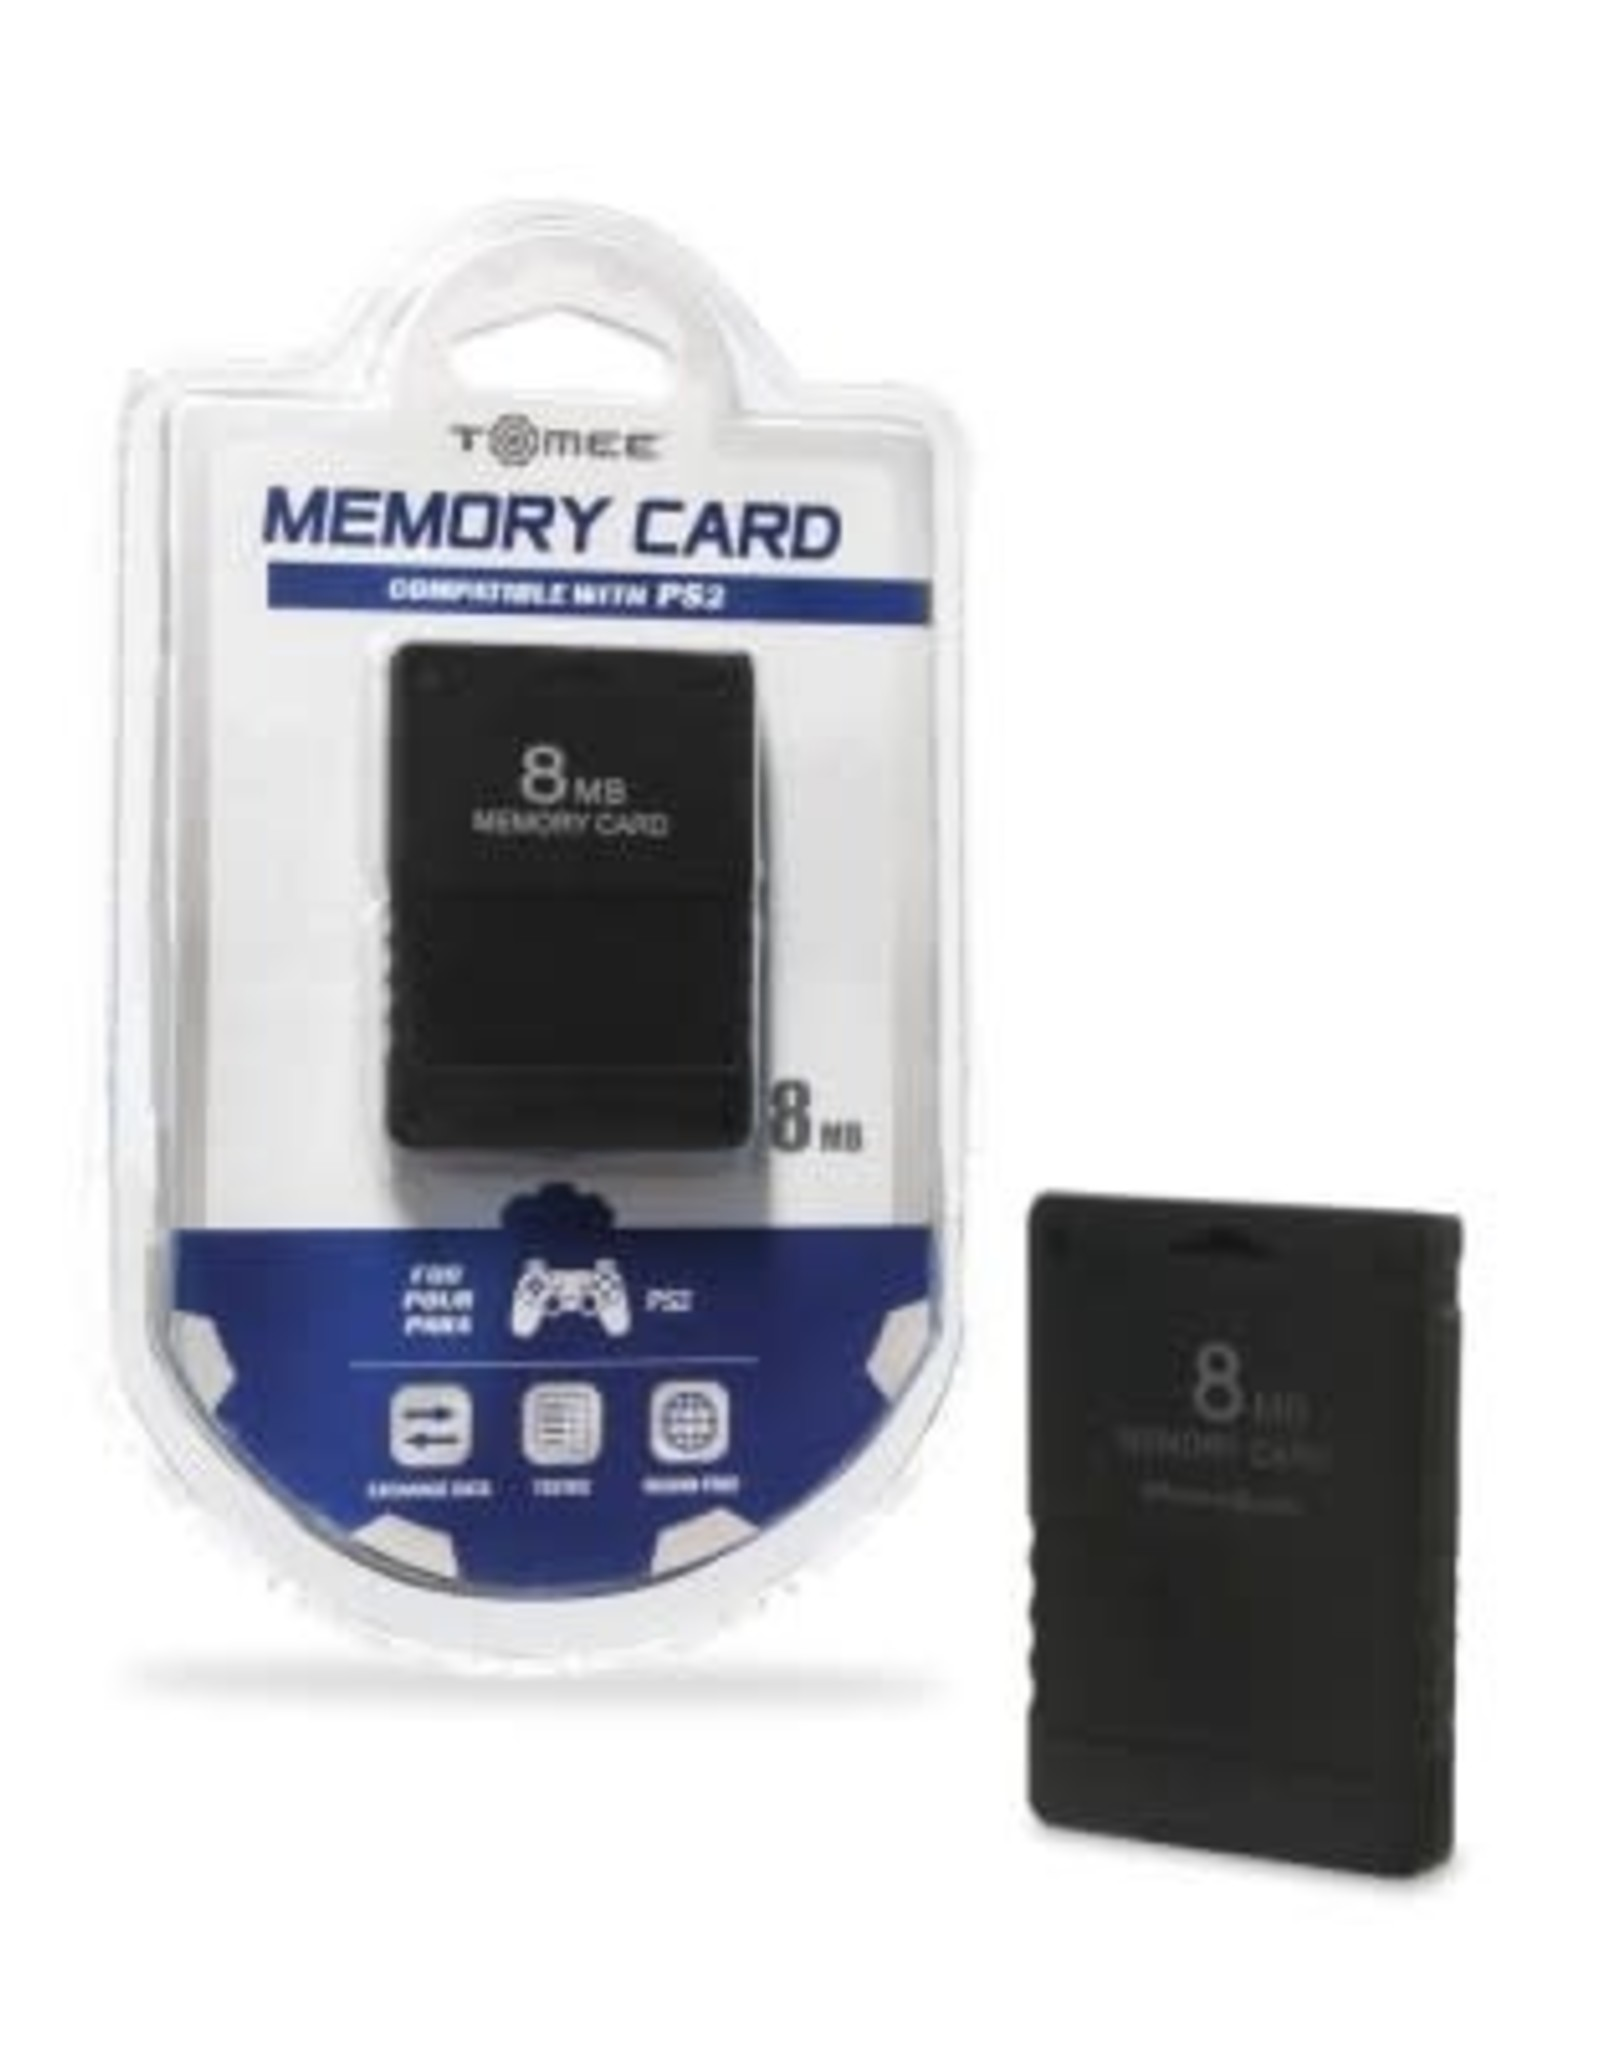 Tomee 8MB Memory Card for PS2